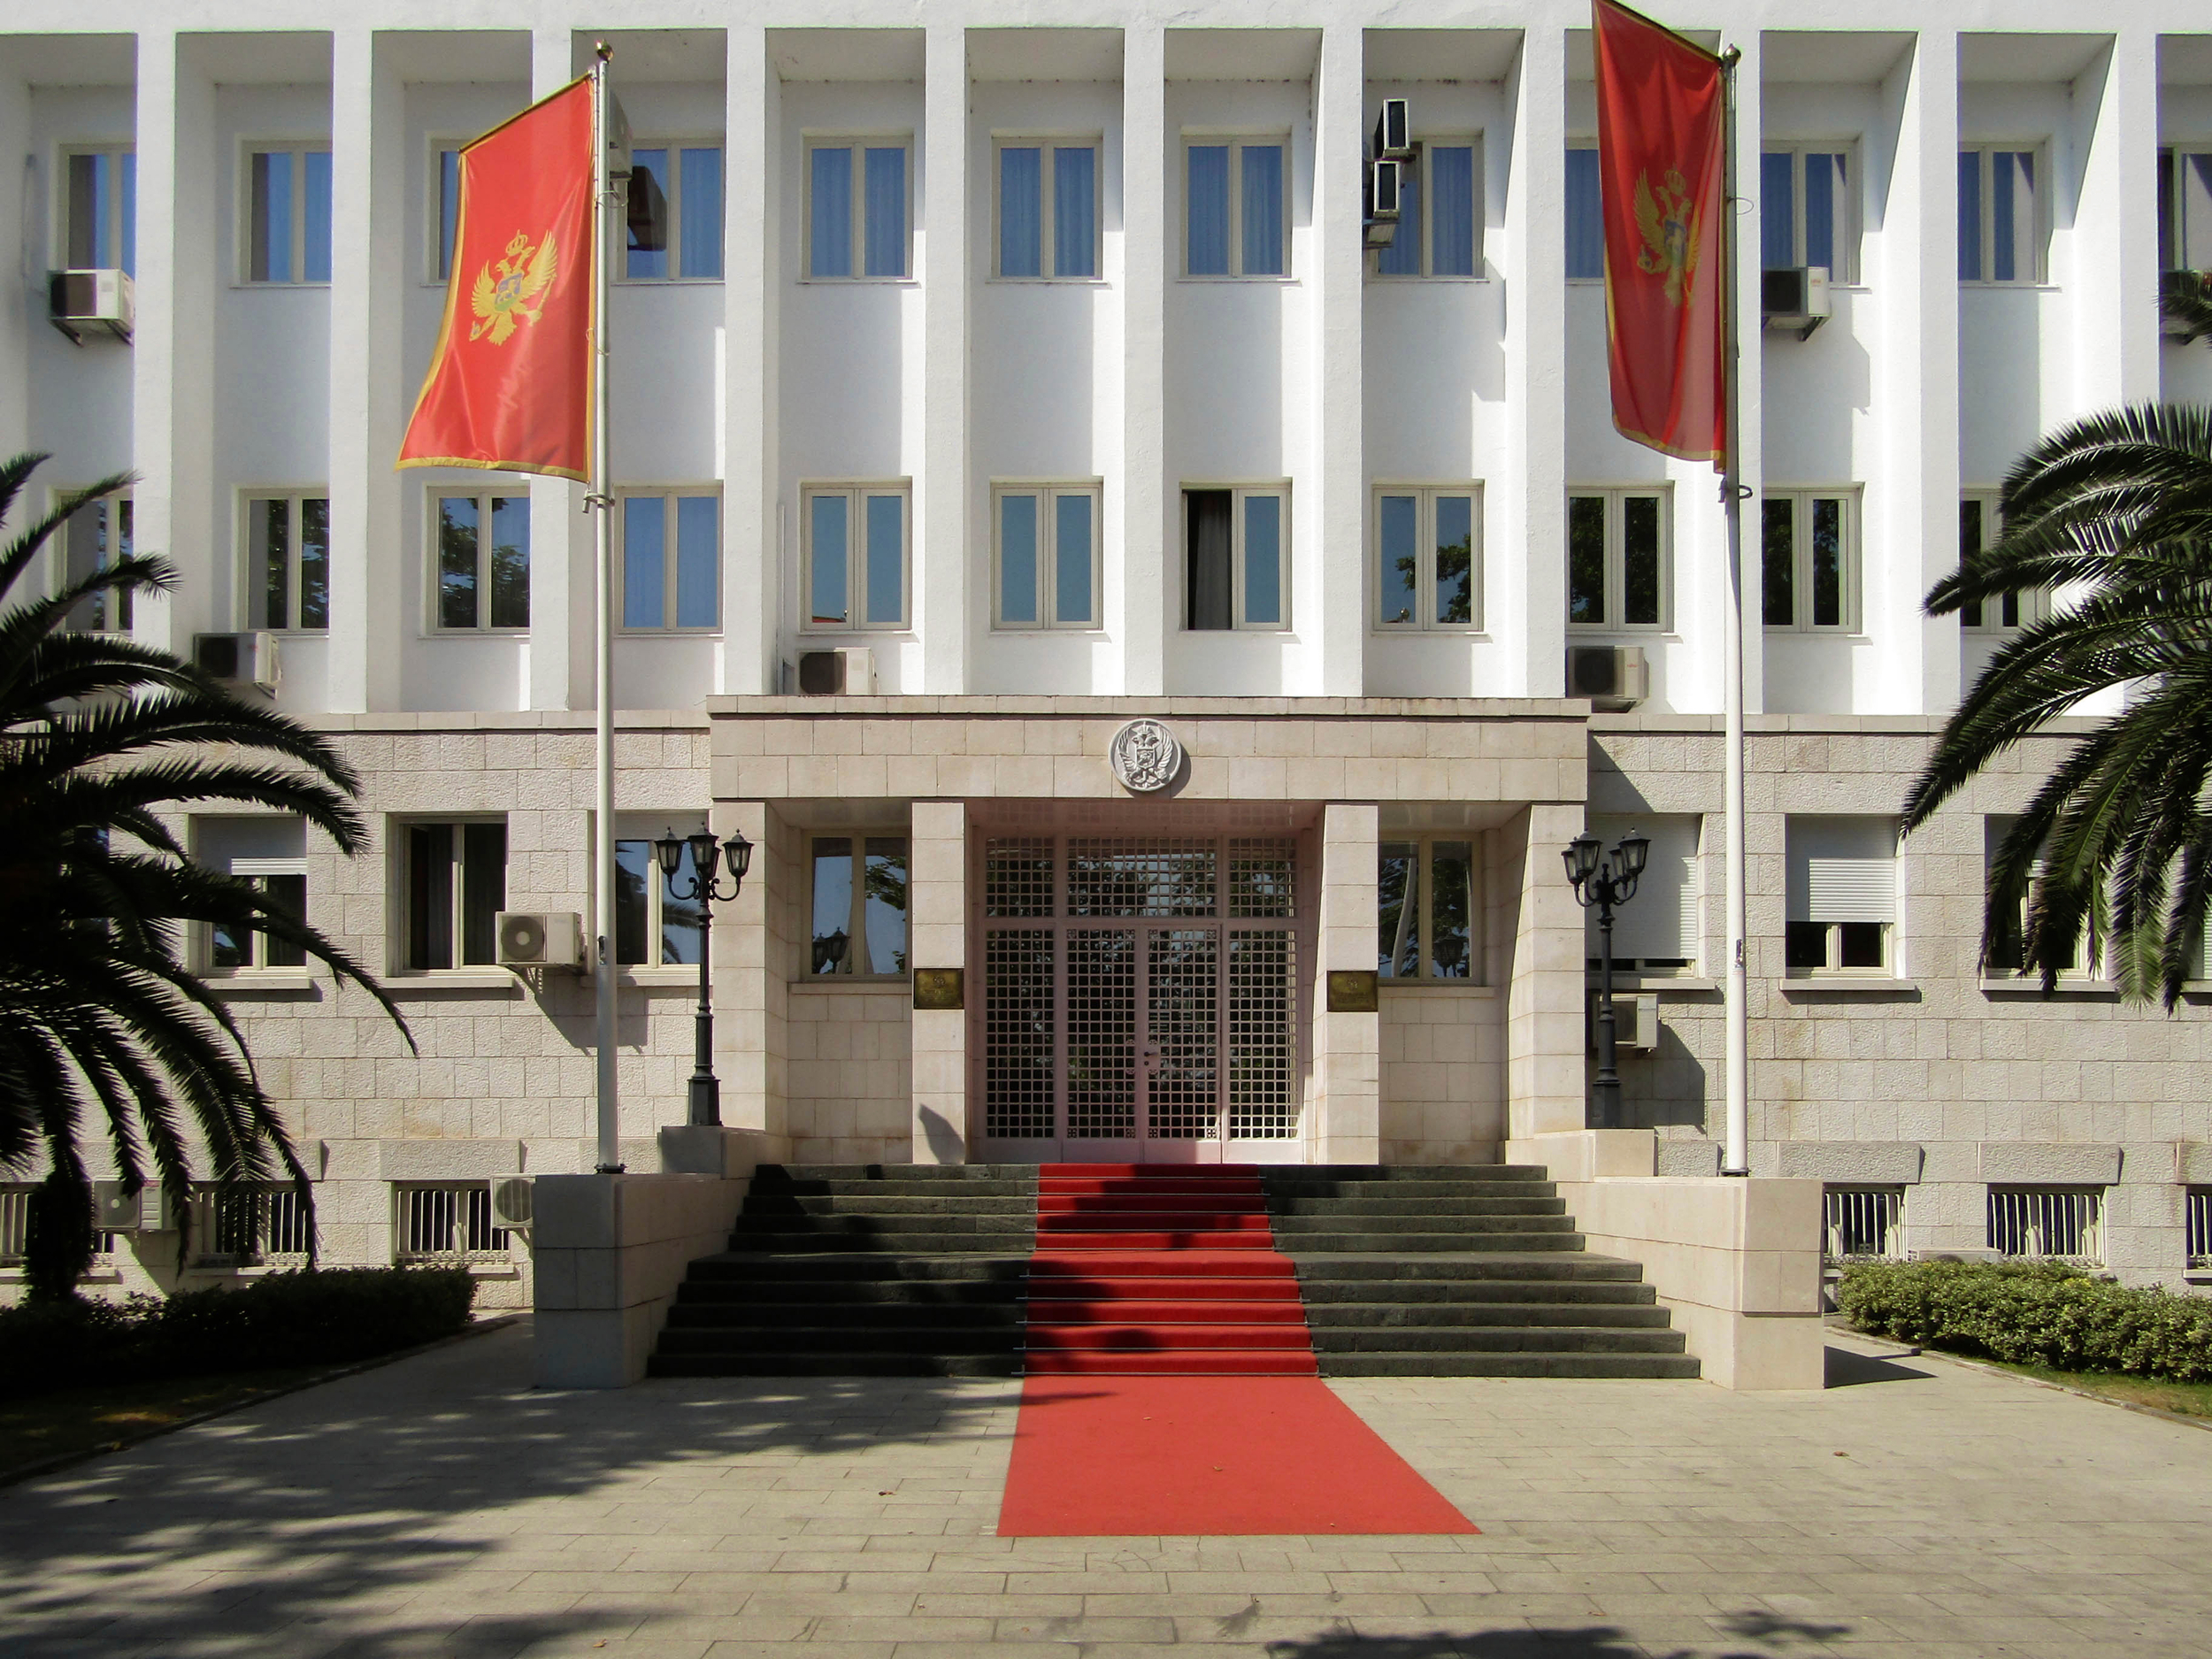 Parliament delivers no results in meeting the political criteria